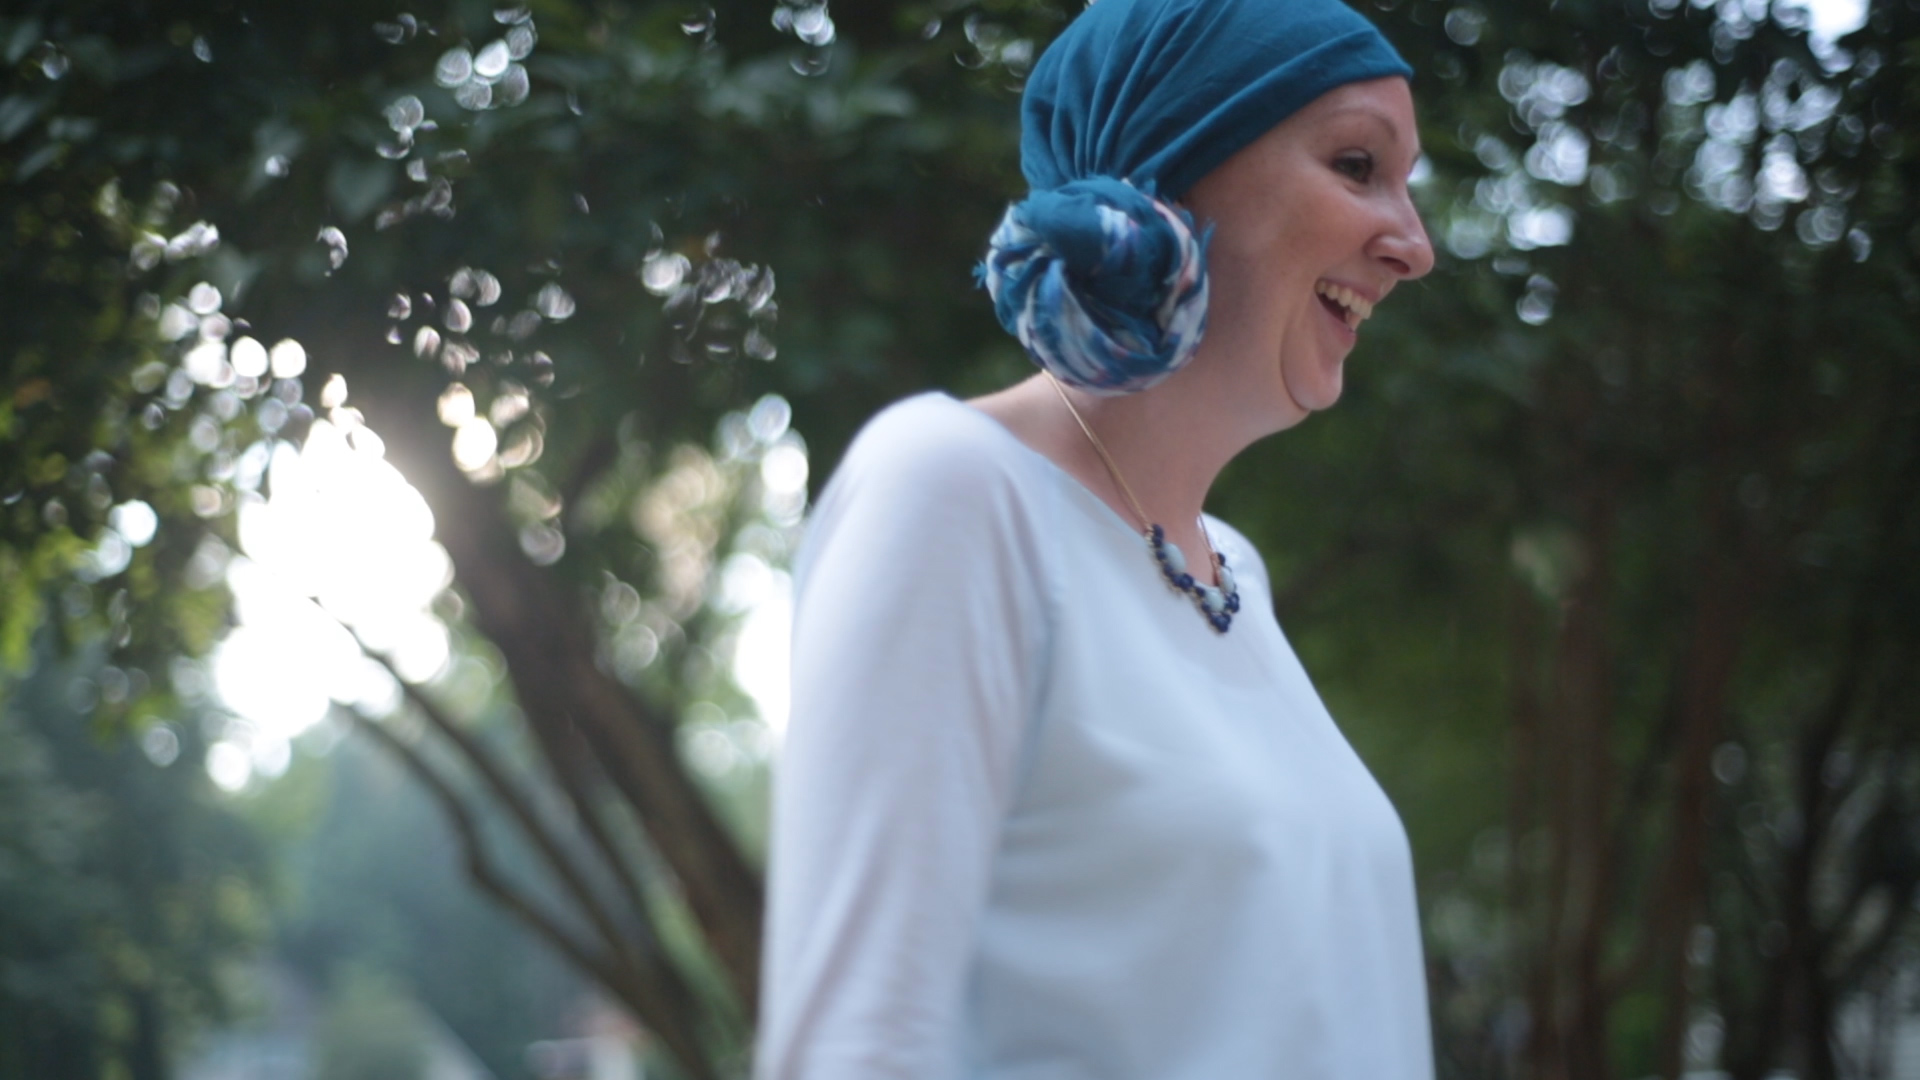 breast cancer patient Lori Elliott plays with kids in yard